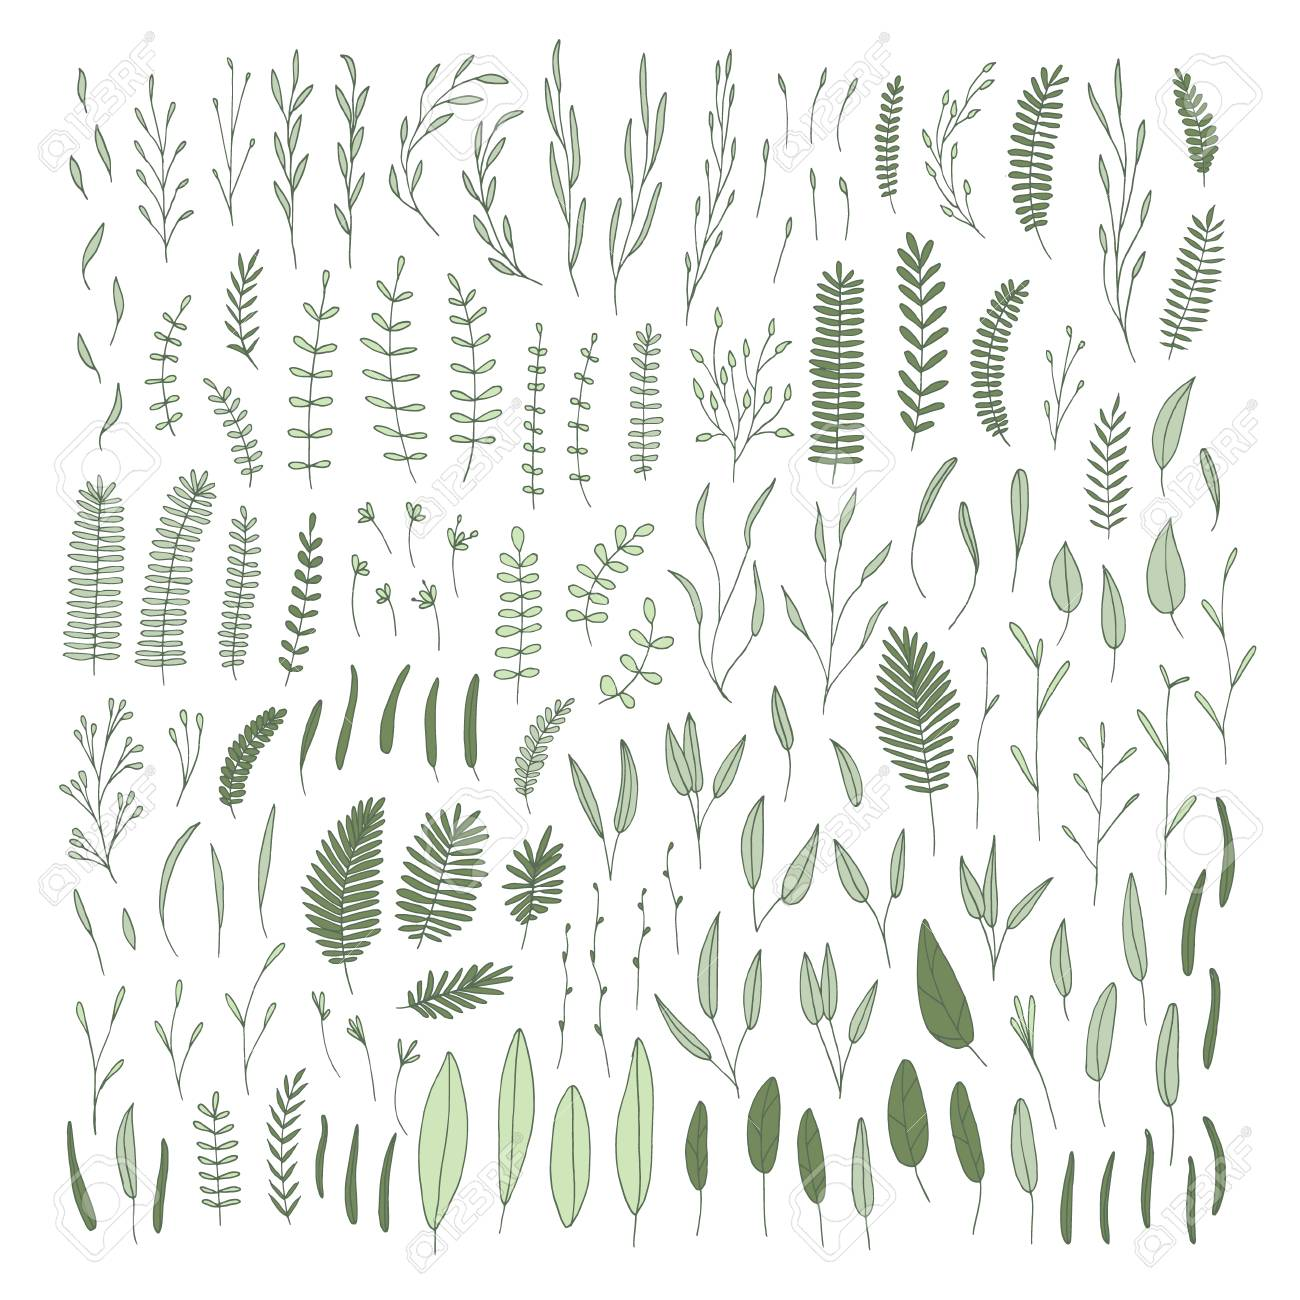 Vector Hand Drawn Collection Of Doodle Leafs And Branches Simple Royalty Free Cliparts Vectors And Stock Illustration Image 112014939